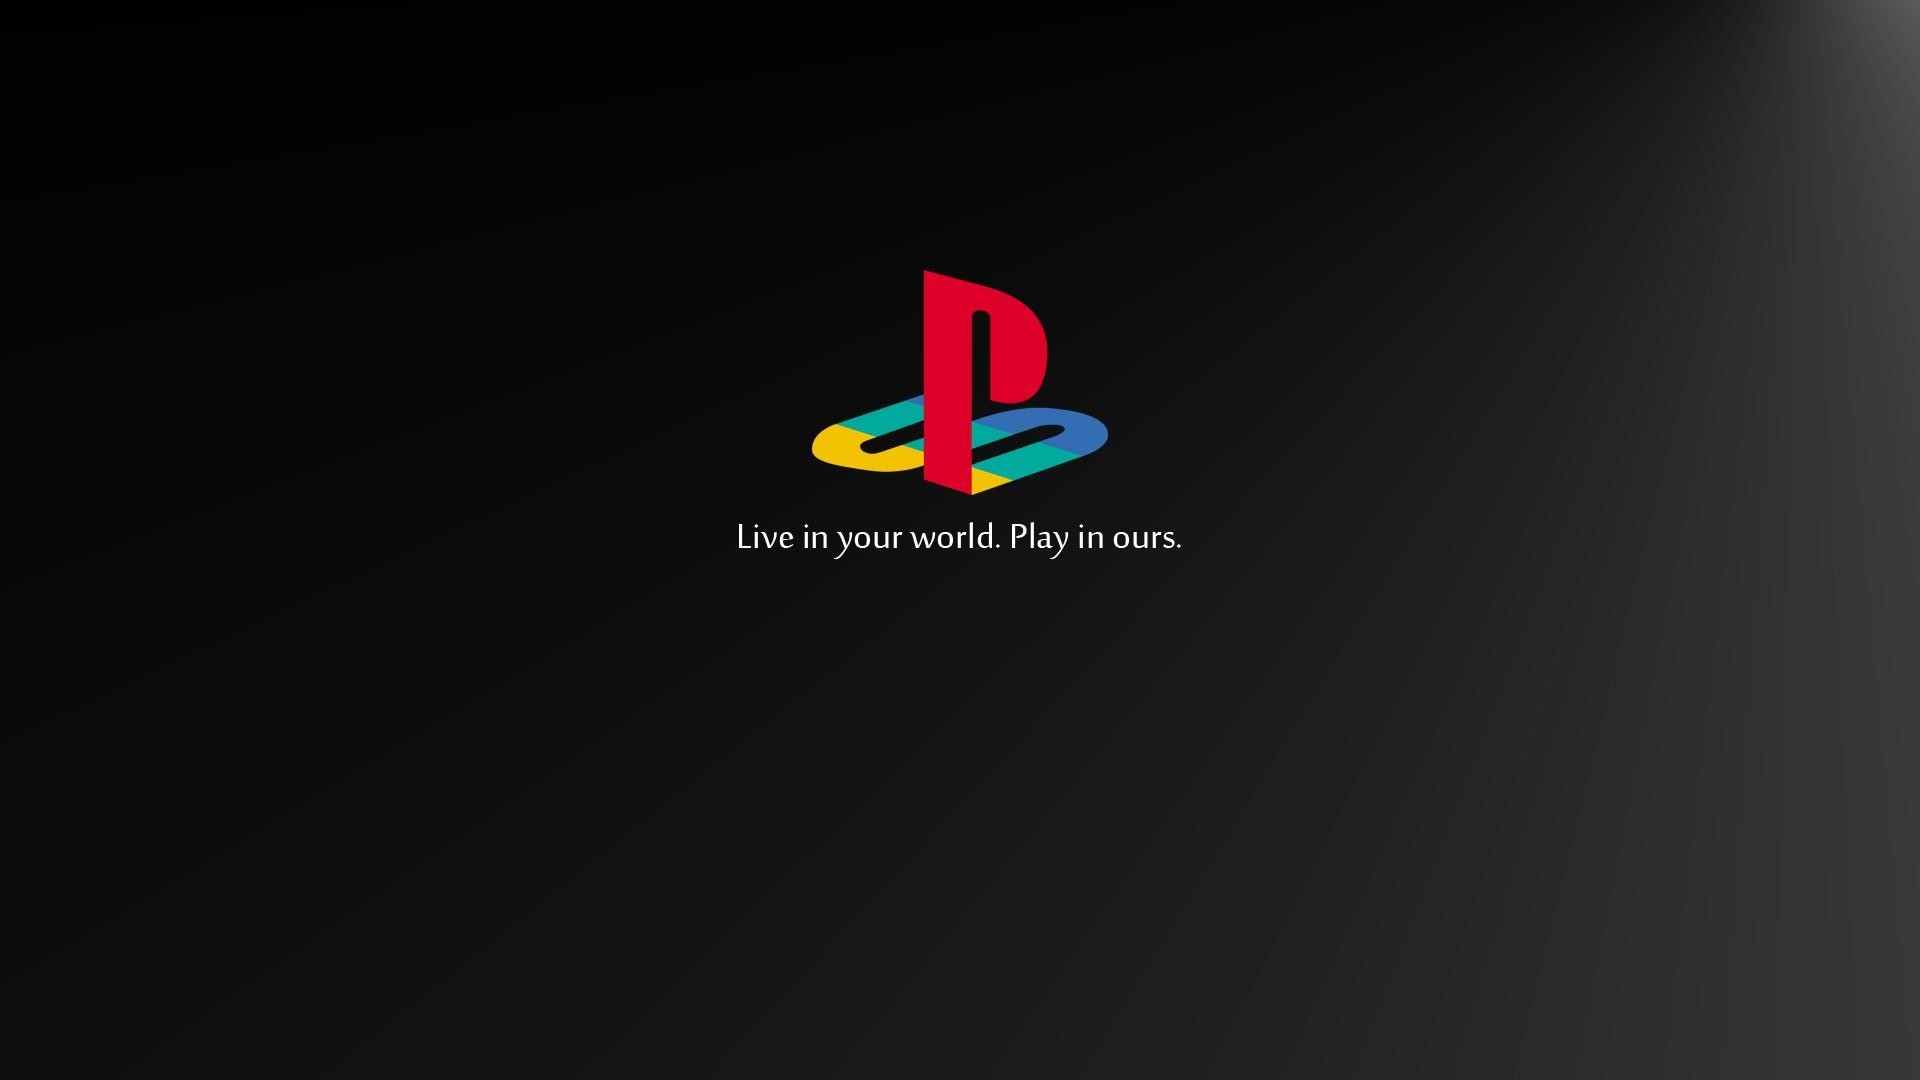 PS4 wallpaper image 1080p hd wallpaper download,background image, wallpaper and Online Stock